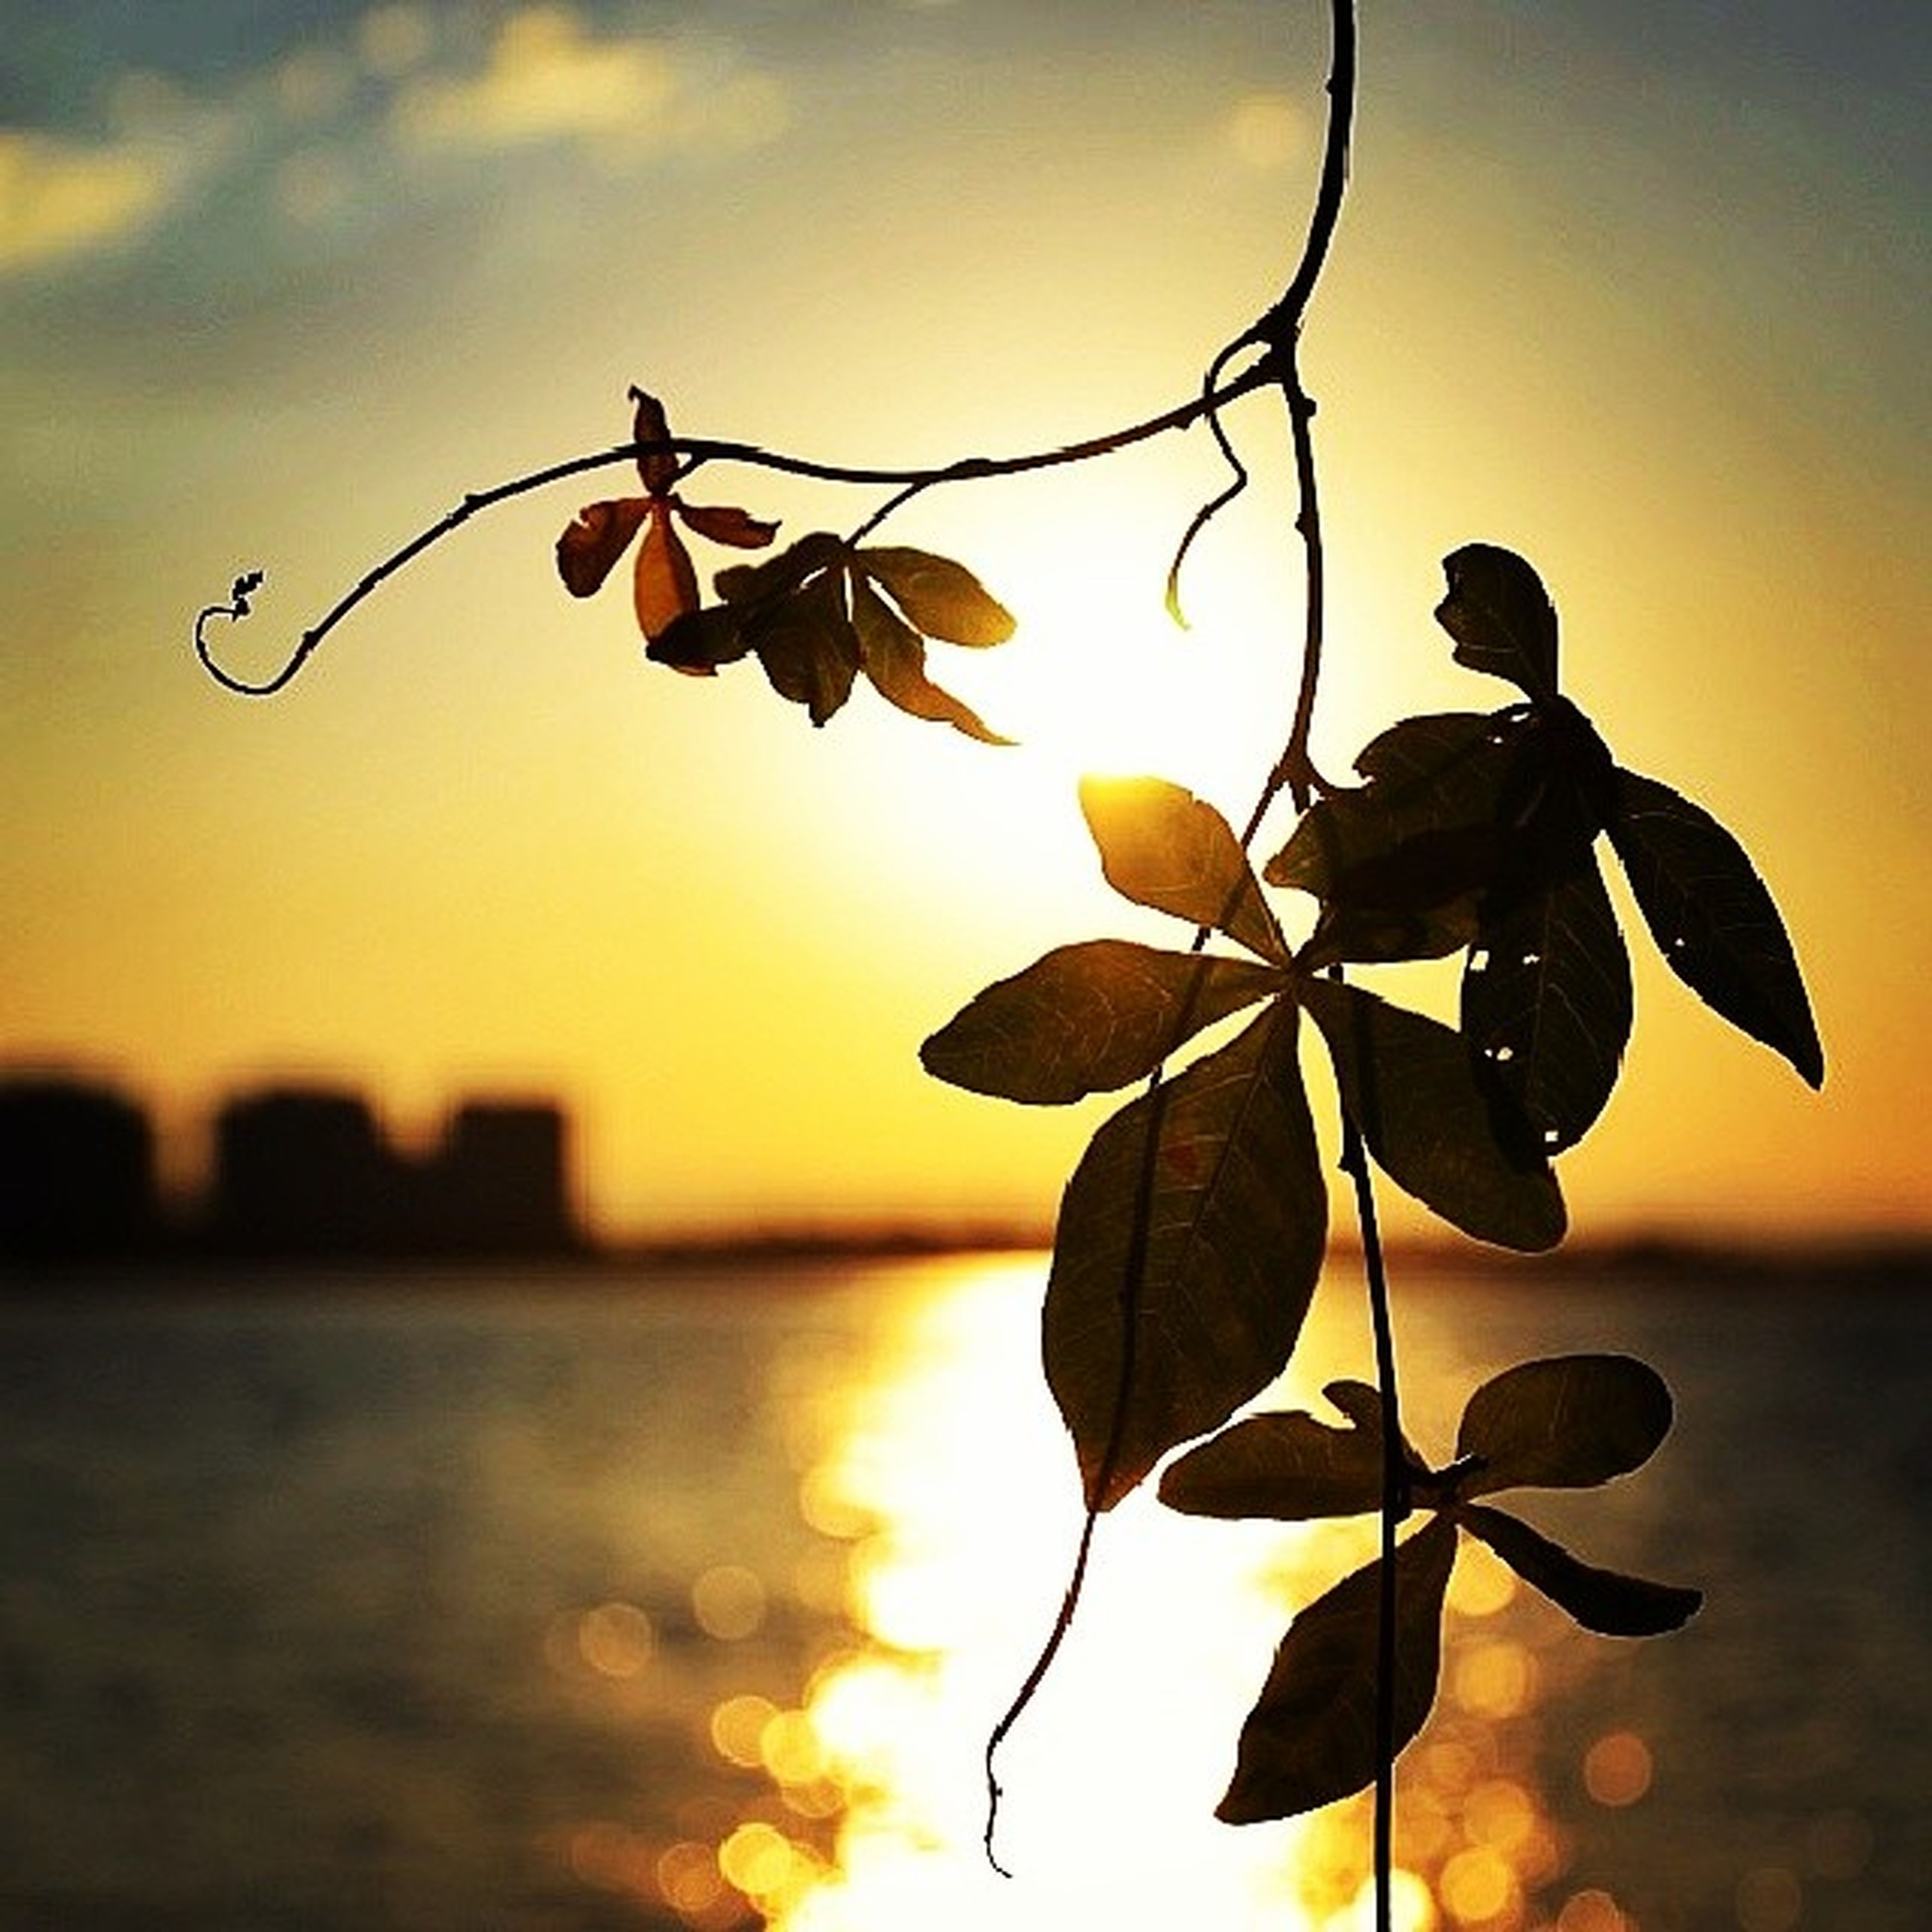 sunset, focus on foreground, close-up, leaf, stem, orange color, nature, plant, sky, growth, beauty in nature, fragility, branch, twig, flower, silhouette, freshness, water, bud, outdoors